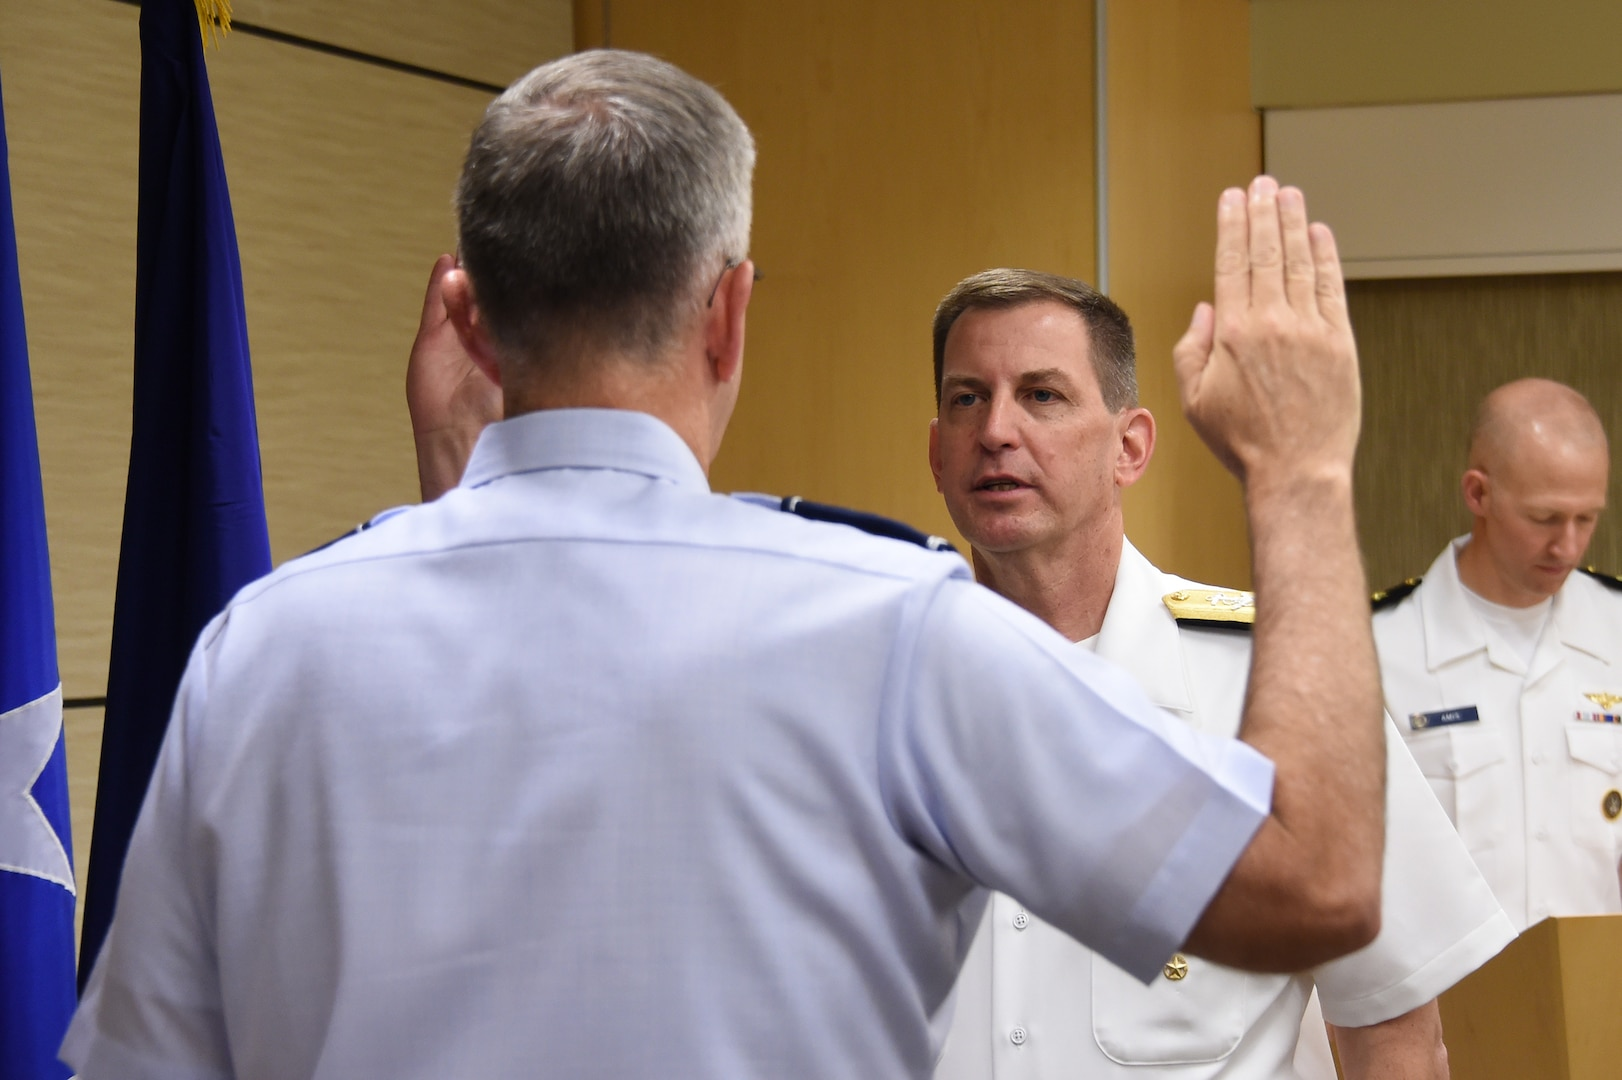 U.S. Navy Vice Adm. Dave Kriete (center), deputy commander of U.S. Strategic Command (USSTRATCOM), recites the oath of office during his promotion ceremony at Offutt Air Force Base, Neb., June 15, 2018. U.S. Air Force Gen. John Hyten (left), commander of USSTRATCOM, presided over the ceremony. Following his promotion, Kriete replaced Vice Adm. Charles Richard as USSTRATCOM deputy commander. He previously served as the National Security Council director of strategic capabilities policy. U.S. Strategic Command has global responsibilities assigned through the Unified Command Plan that include strategic deterrence, nuclear operations, space operations, joint electromagnetic spectrum operations, global strike, missile defense, and analysis and targeting.